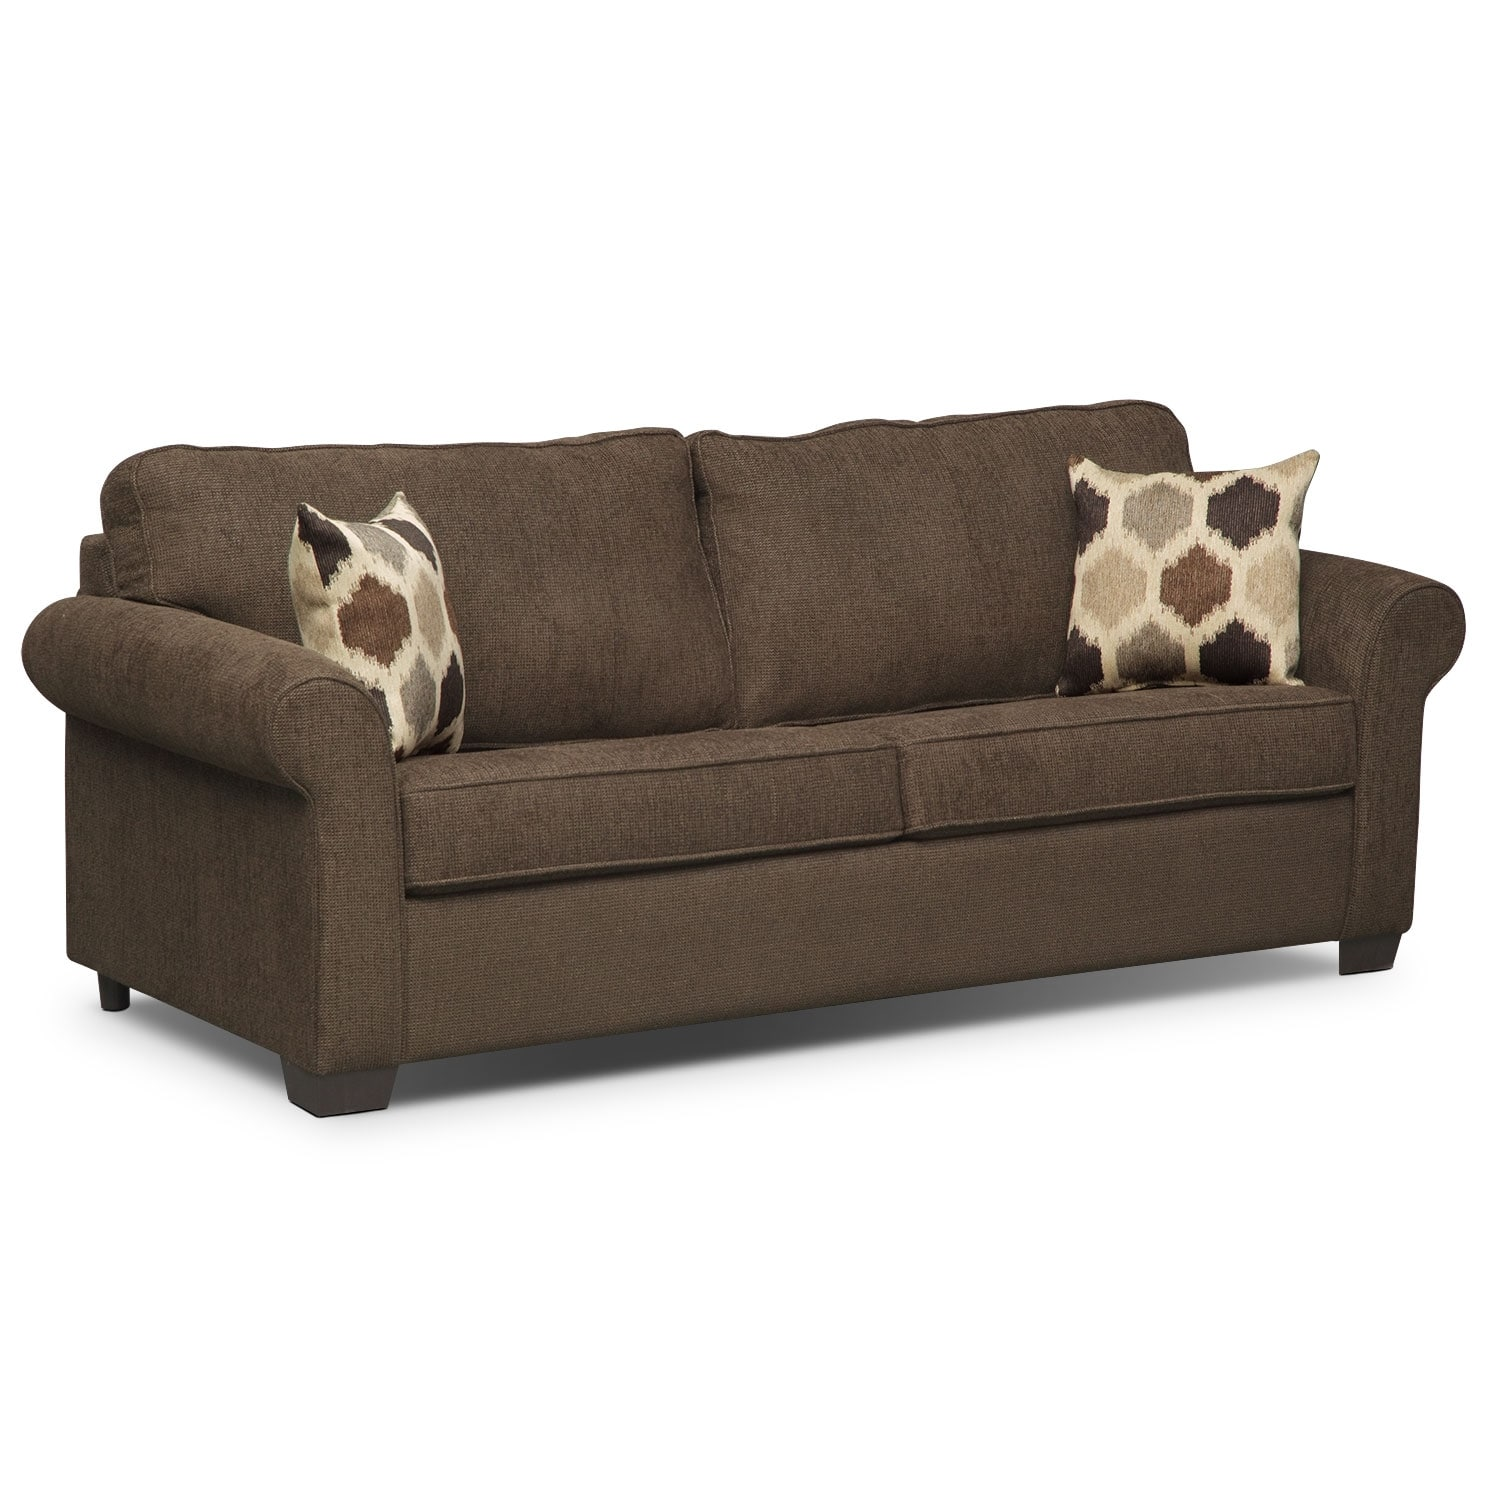 Fletcher queen memory foam sleeper sofa chocolate value city furniture Sofa sleeper loveseat